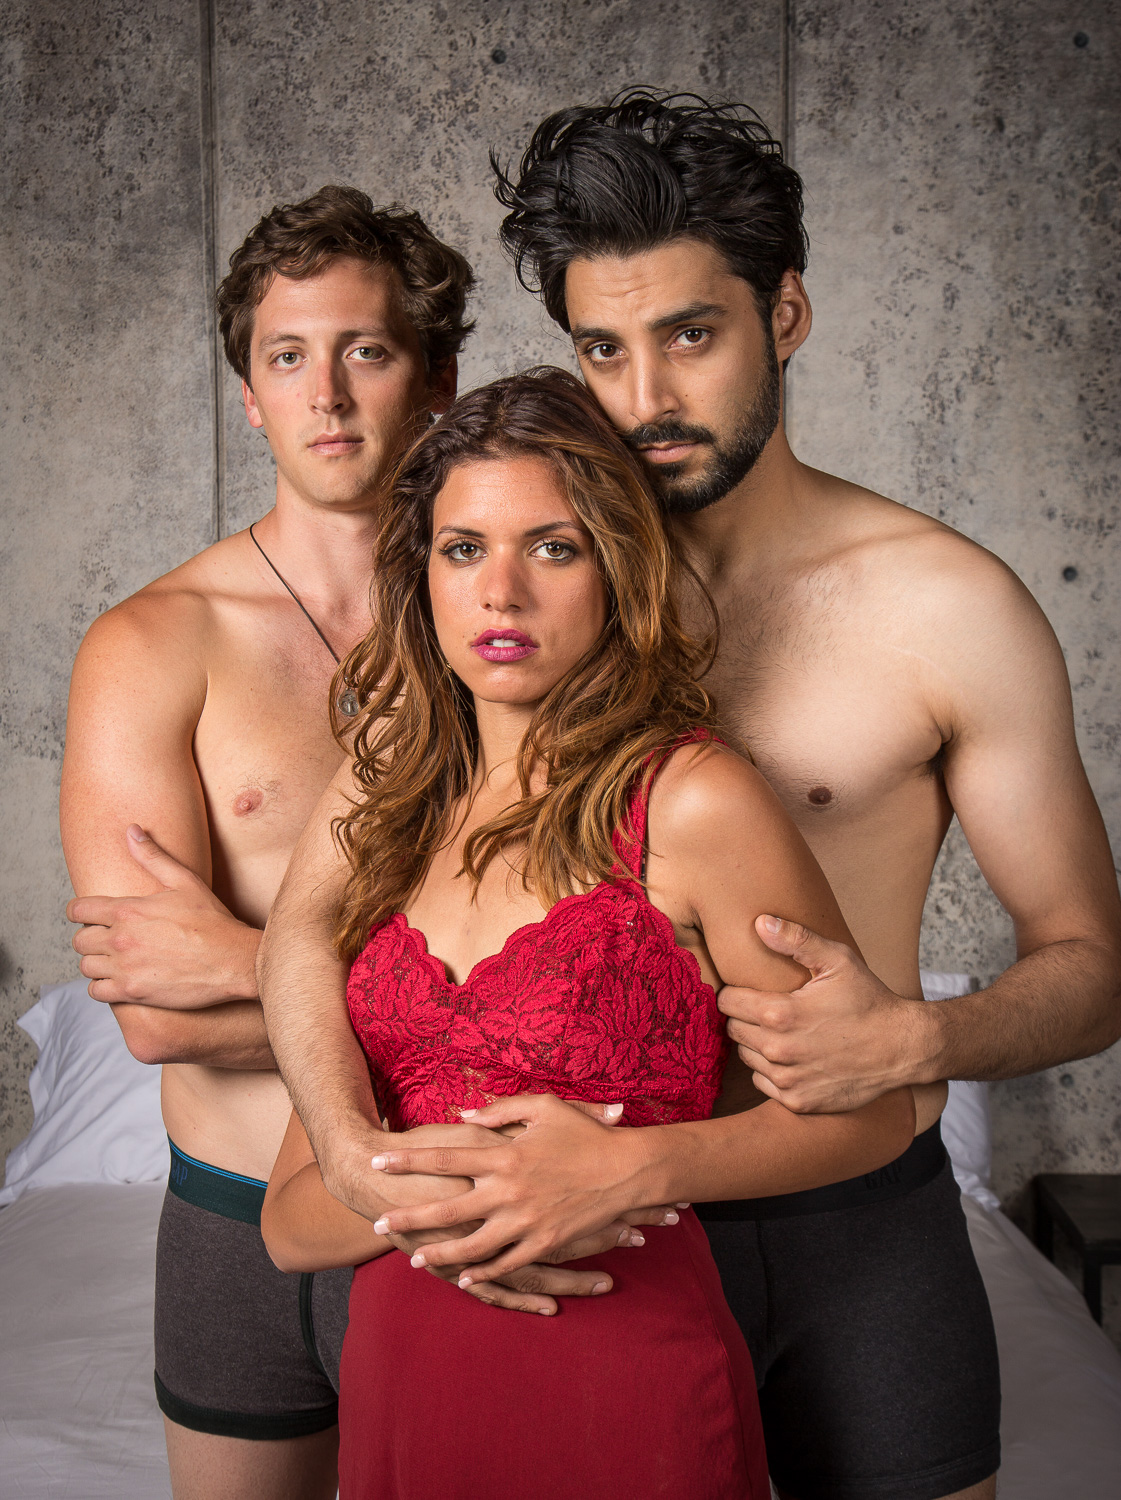 Threesome at ACT Theater June 2015